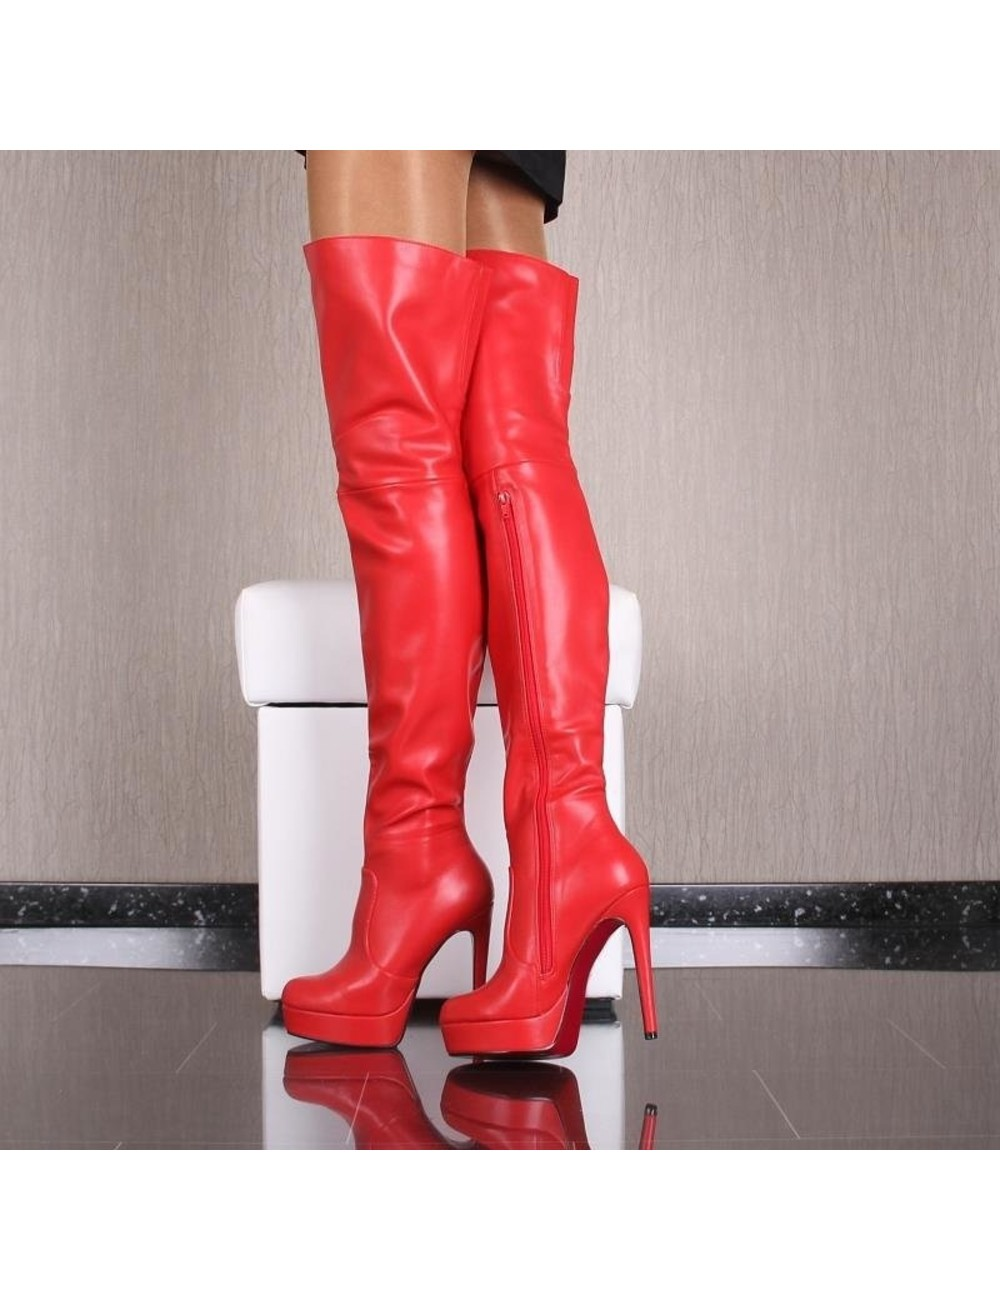 Red thigh boots with high heels and red